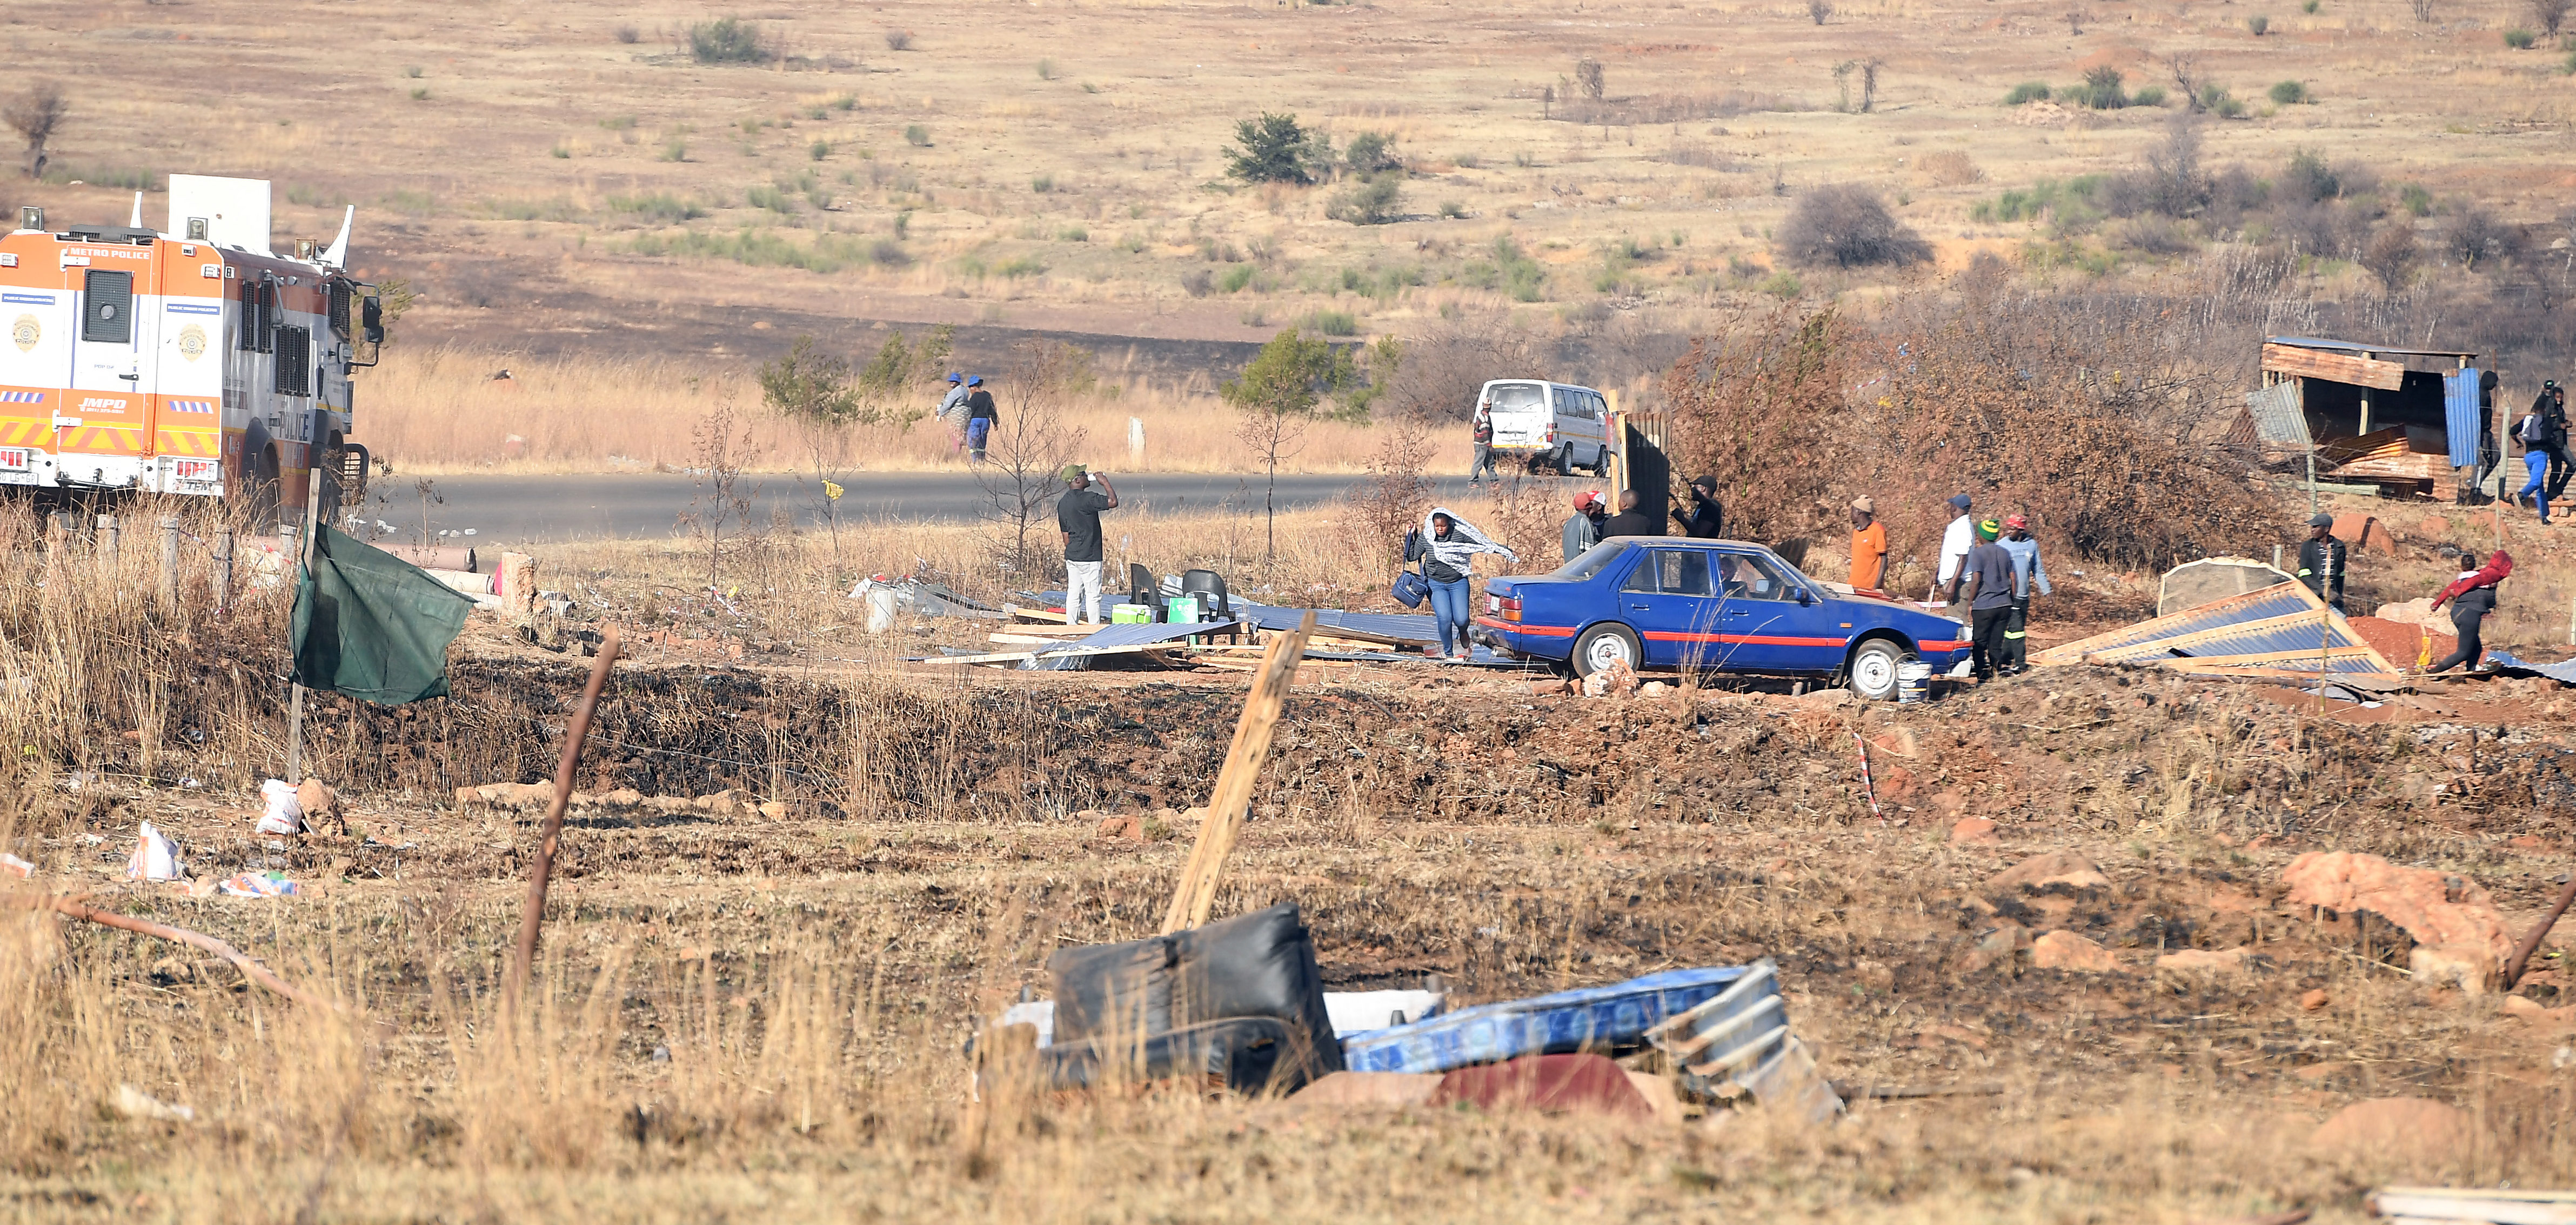 Joburg South land grabs: 'We will go to war,' say residents